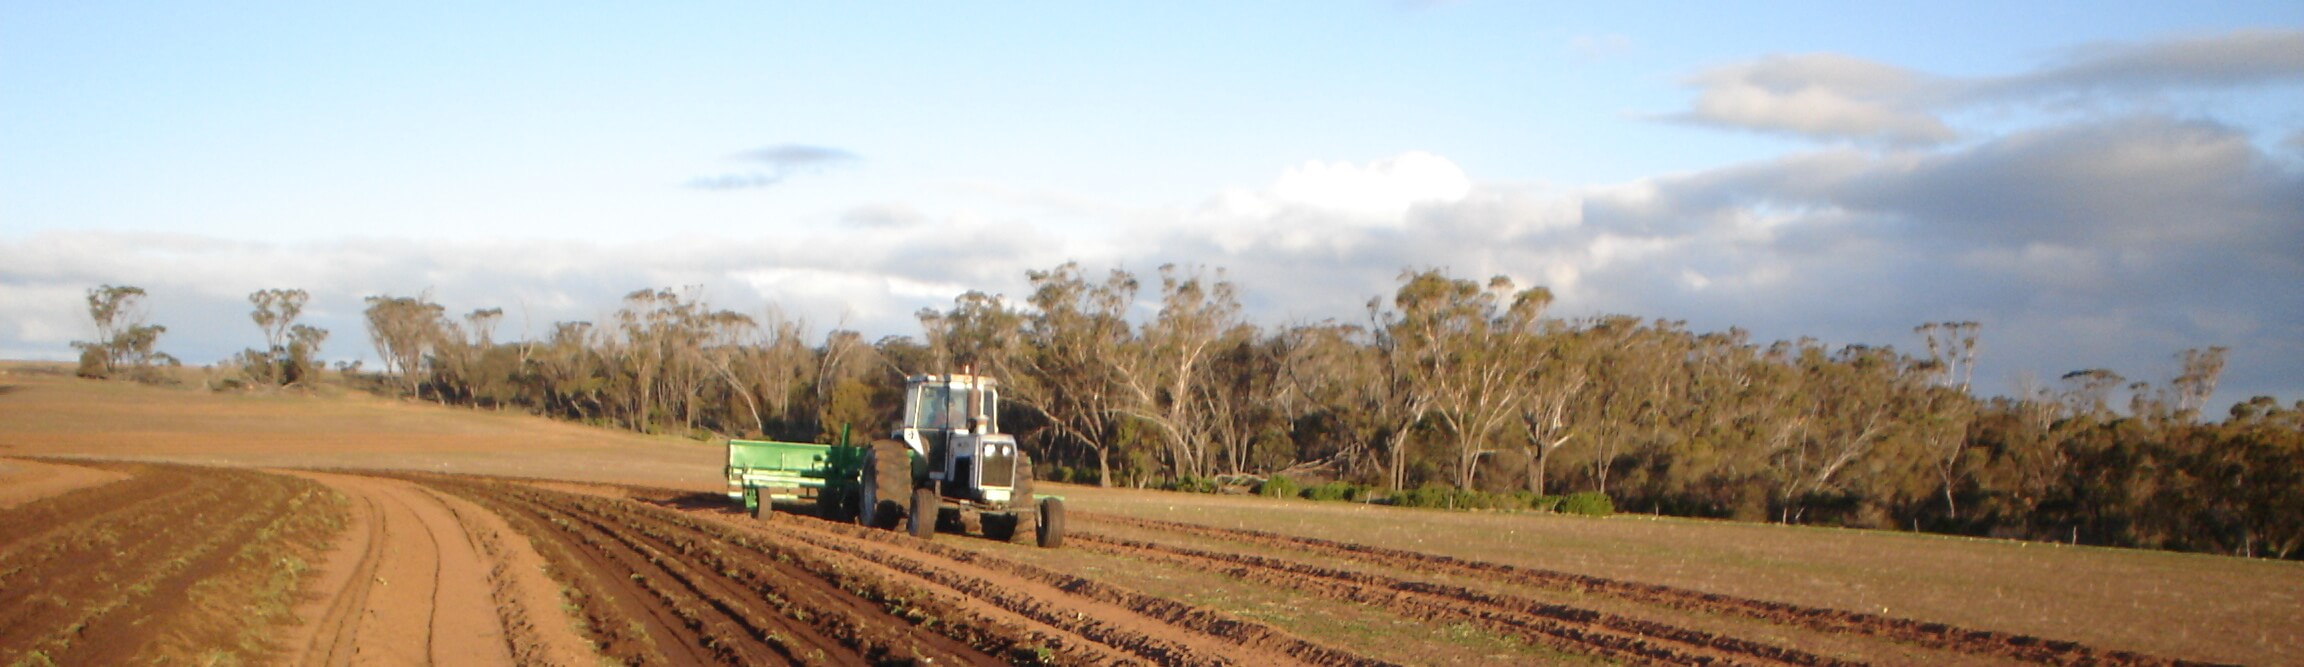 Seeding in a restoration trial at Peniup, Western Australia